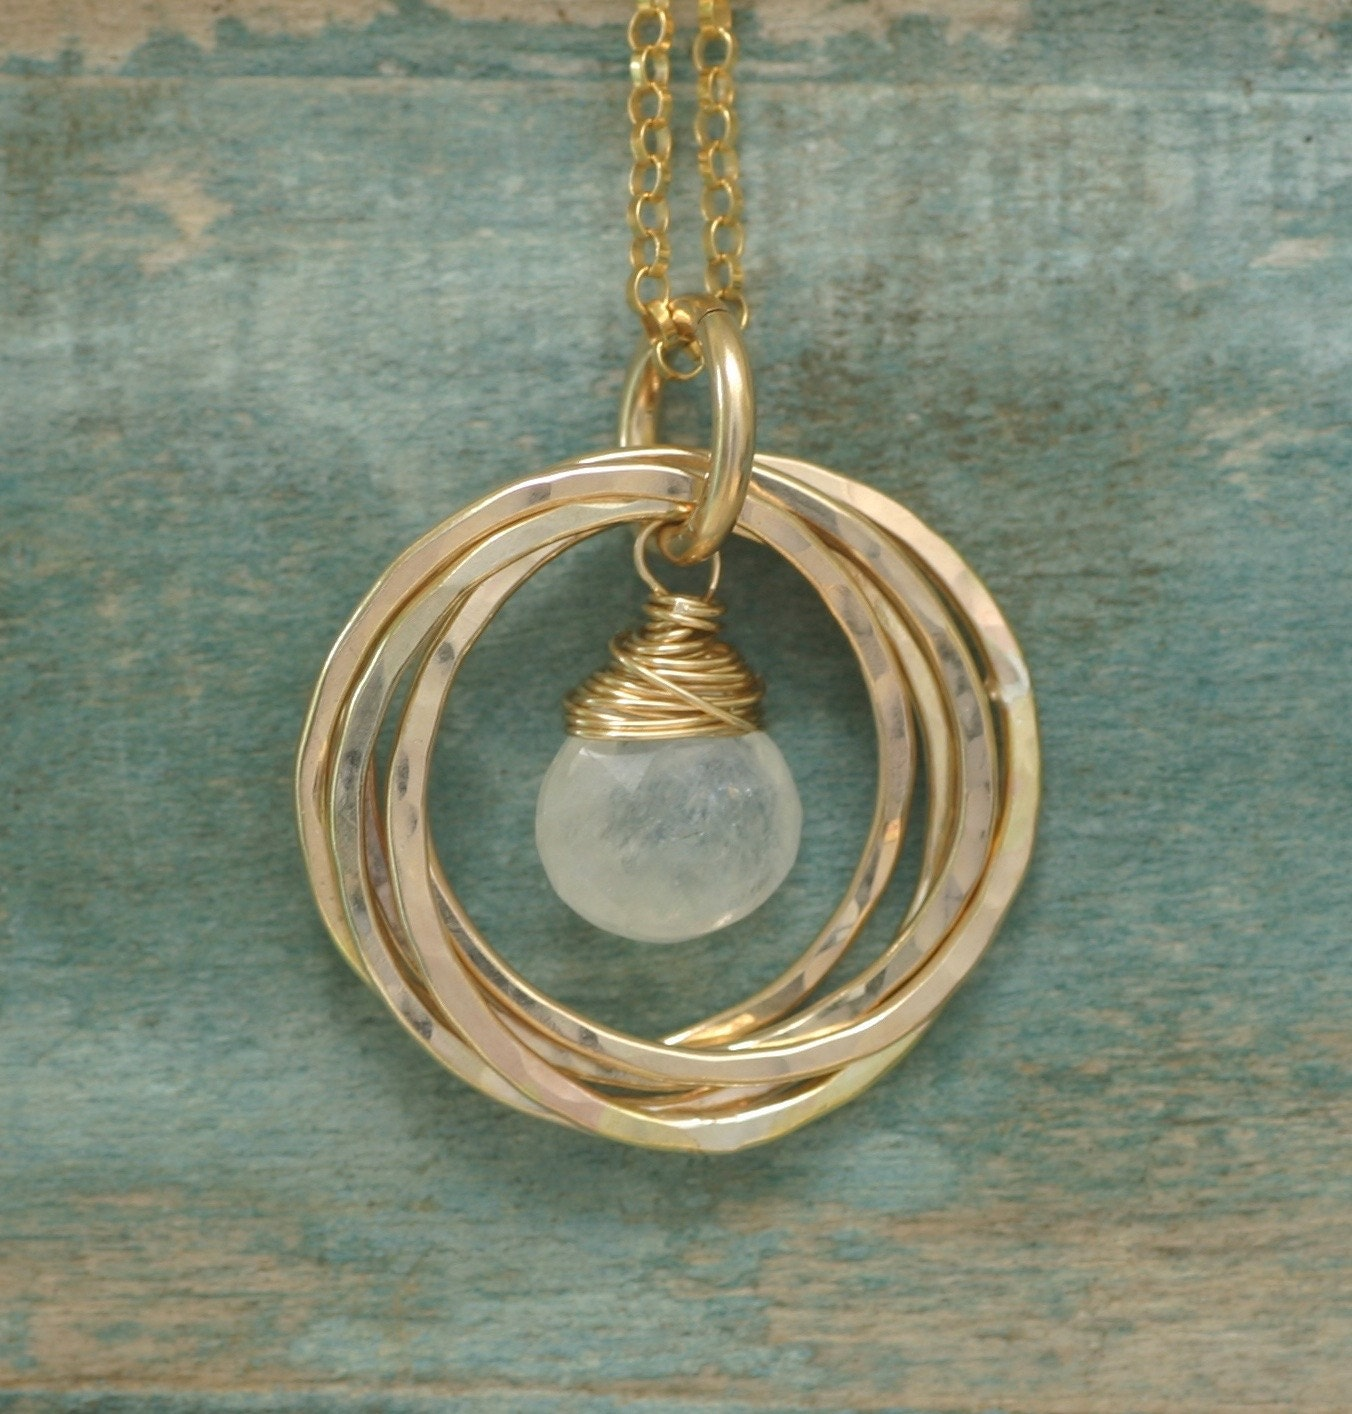 50th birthday gift moonstone necklace gold 5 year